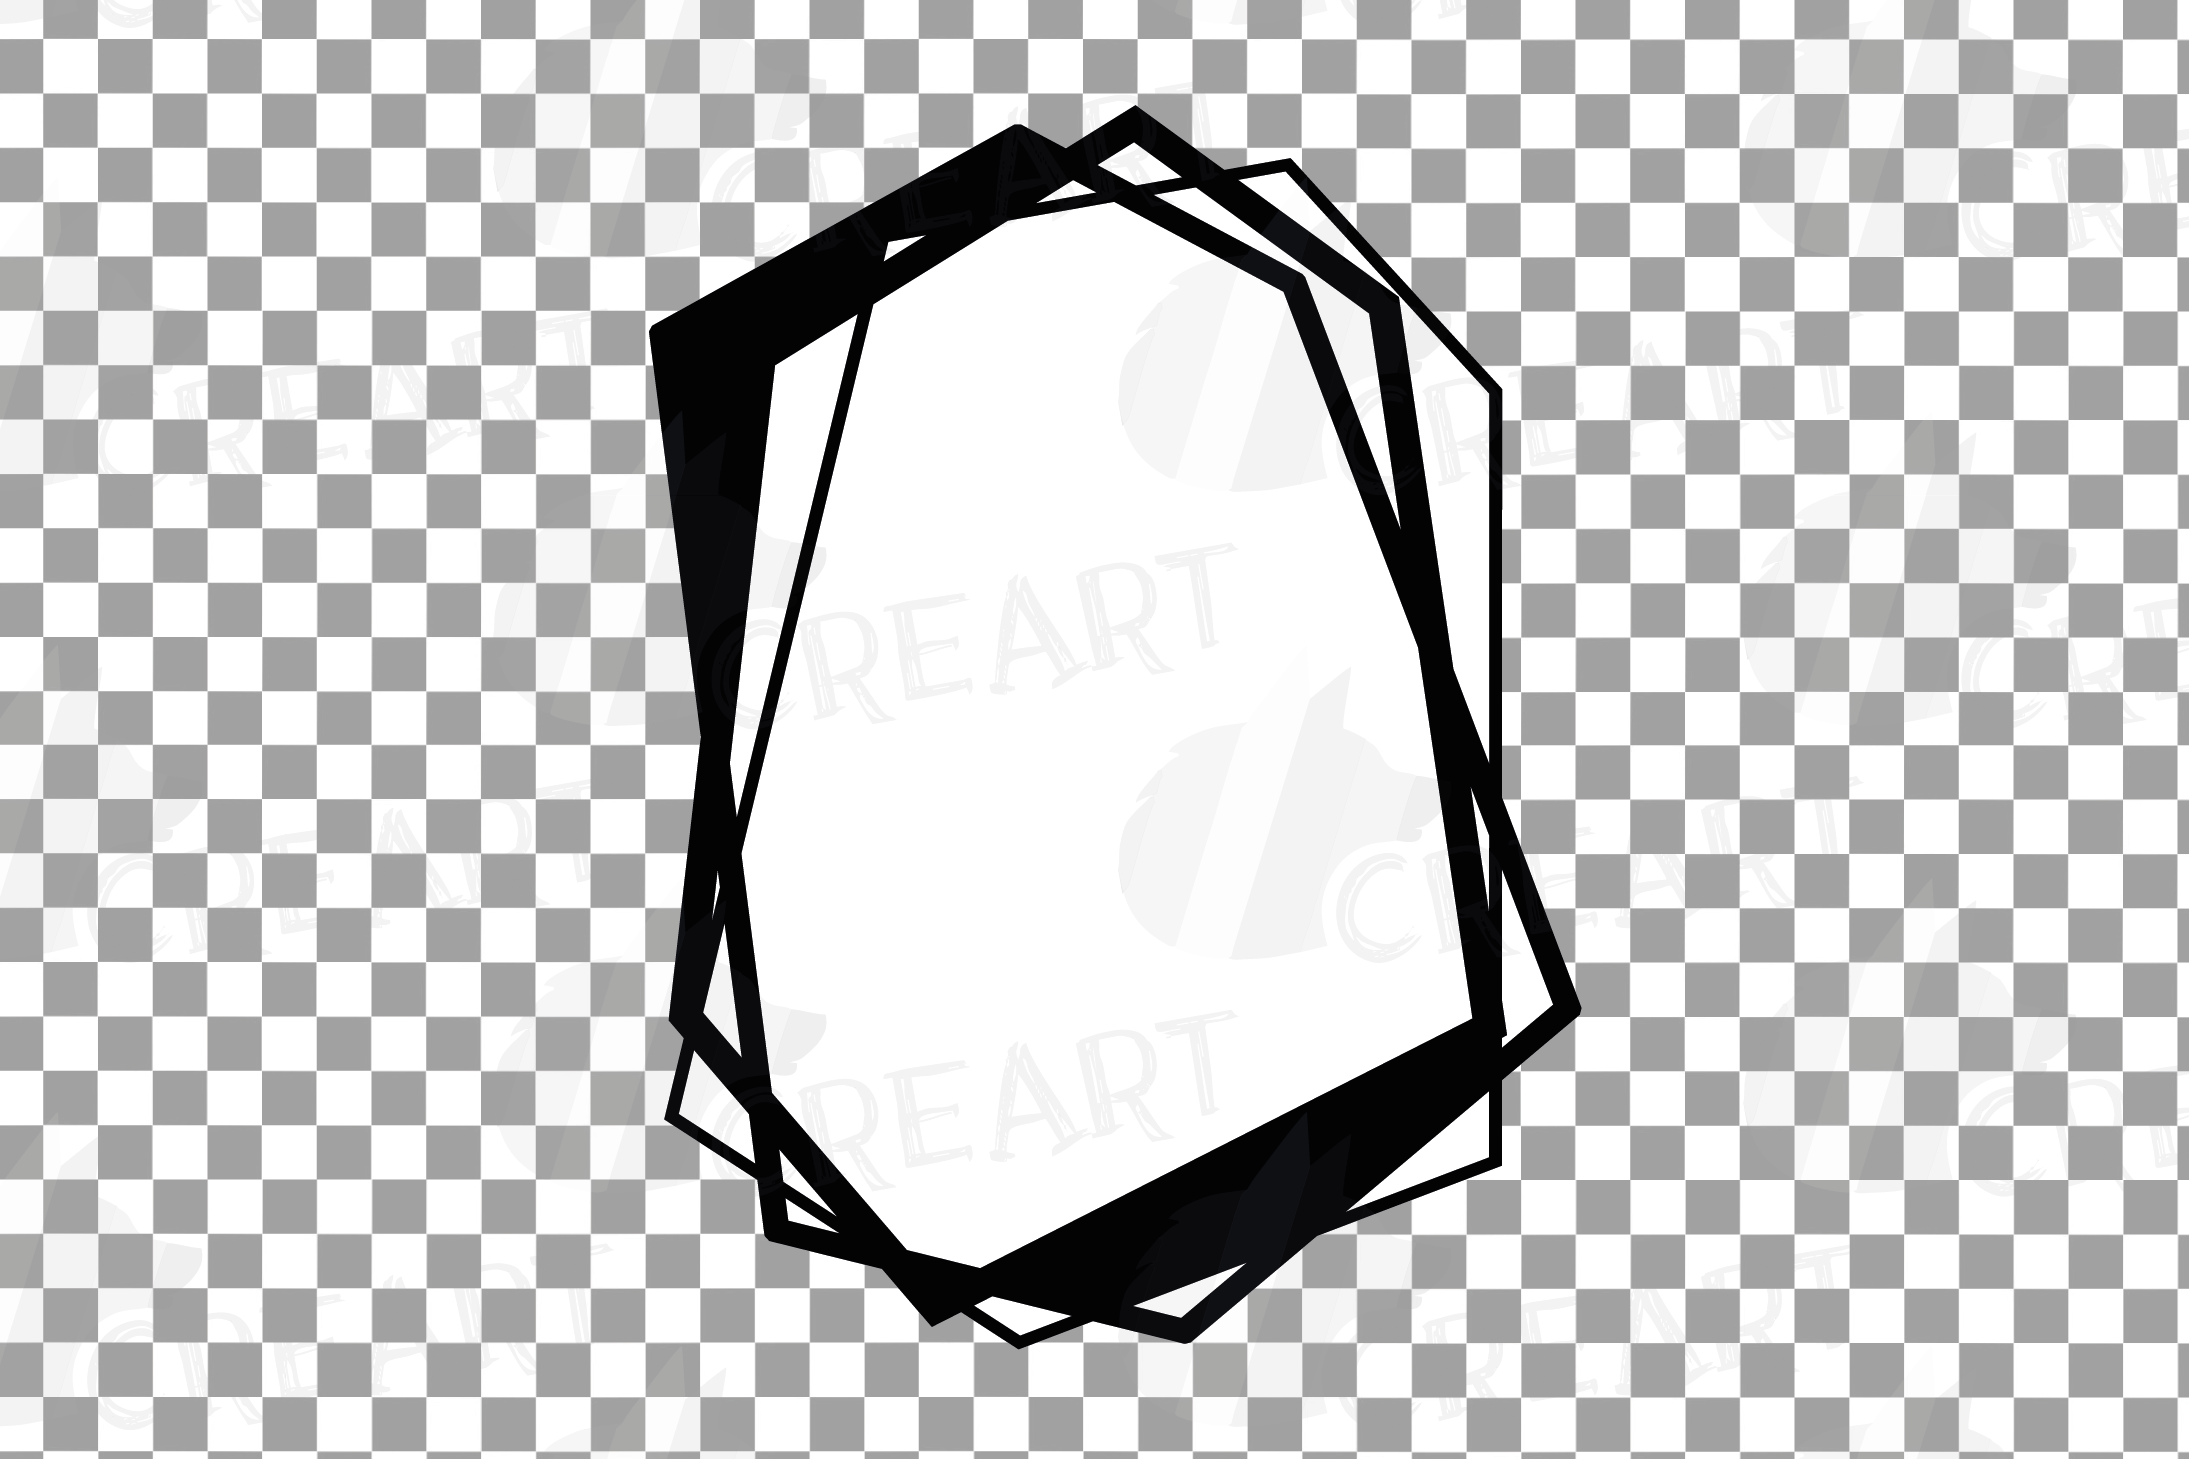 Chaotic geometric black frames, lineal frames clip art example image 13